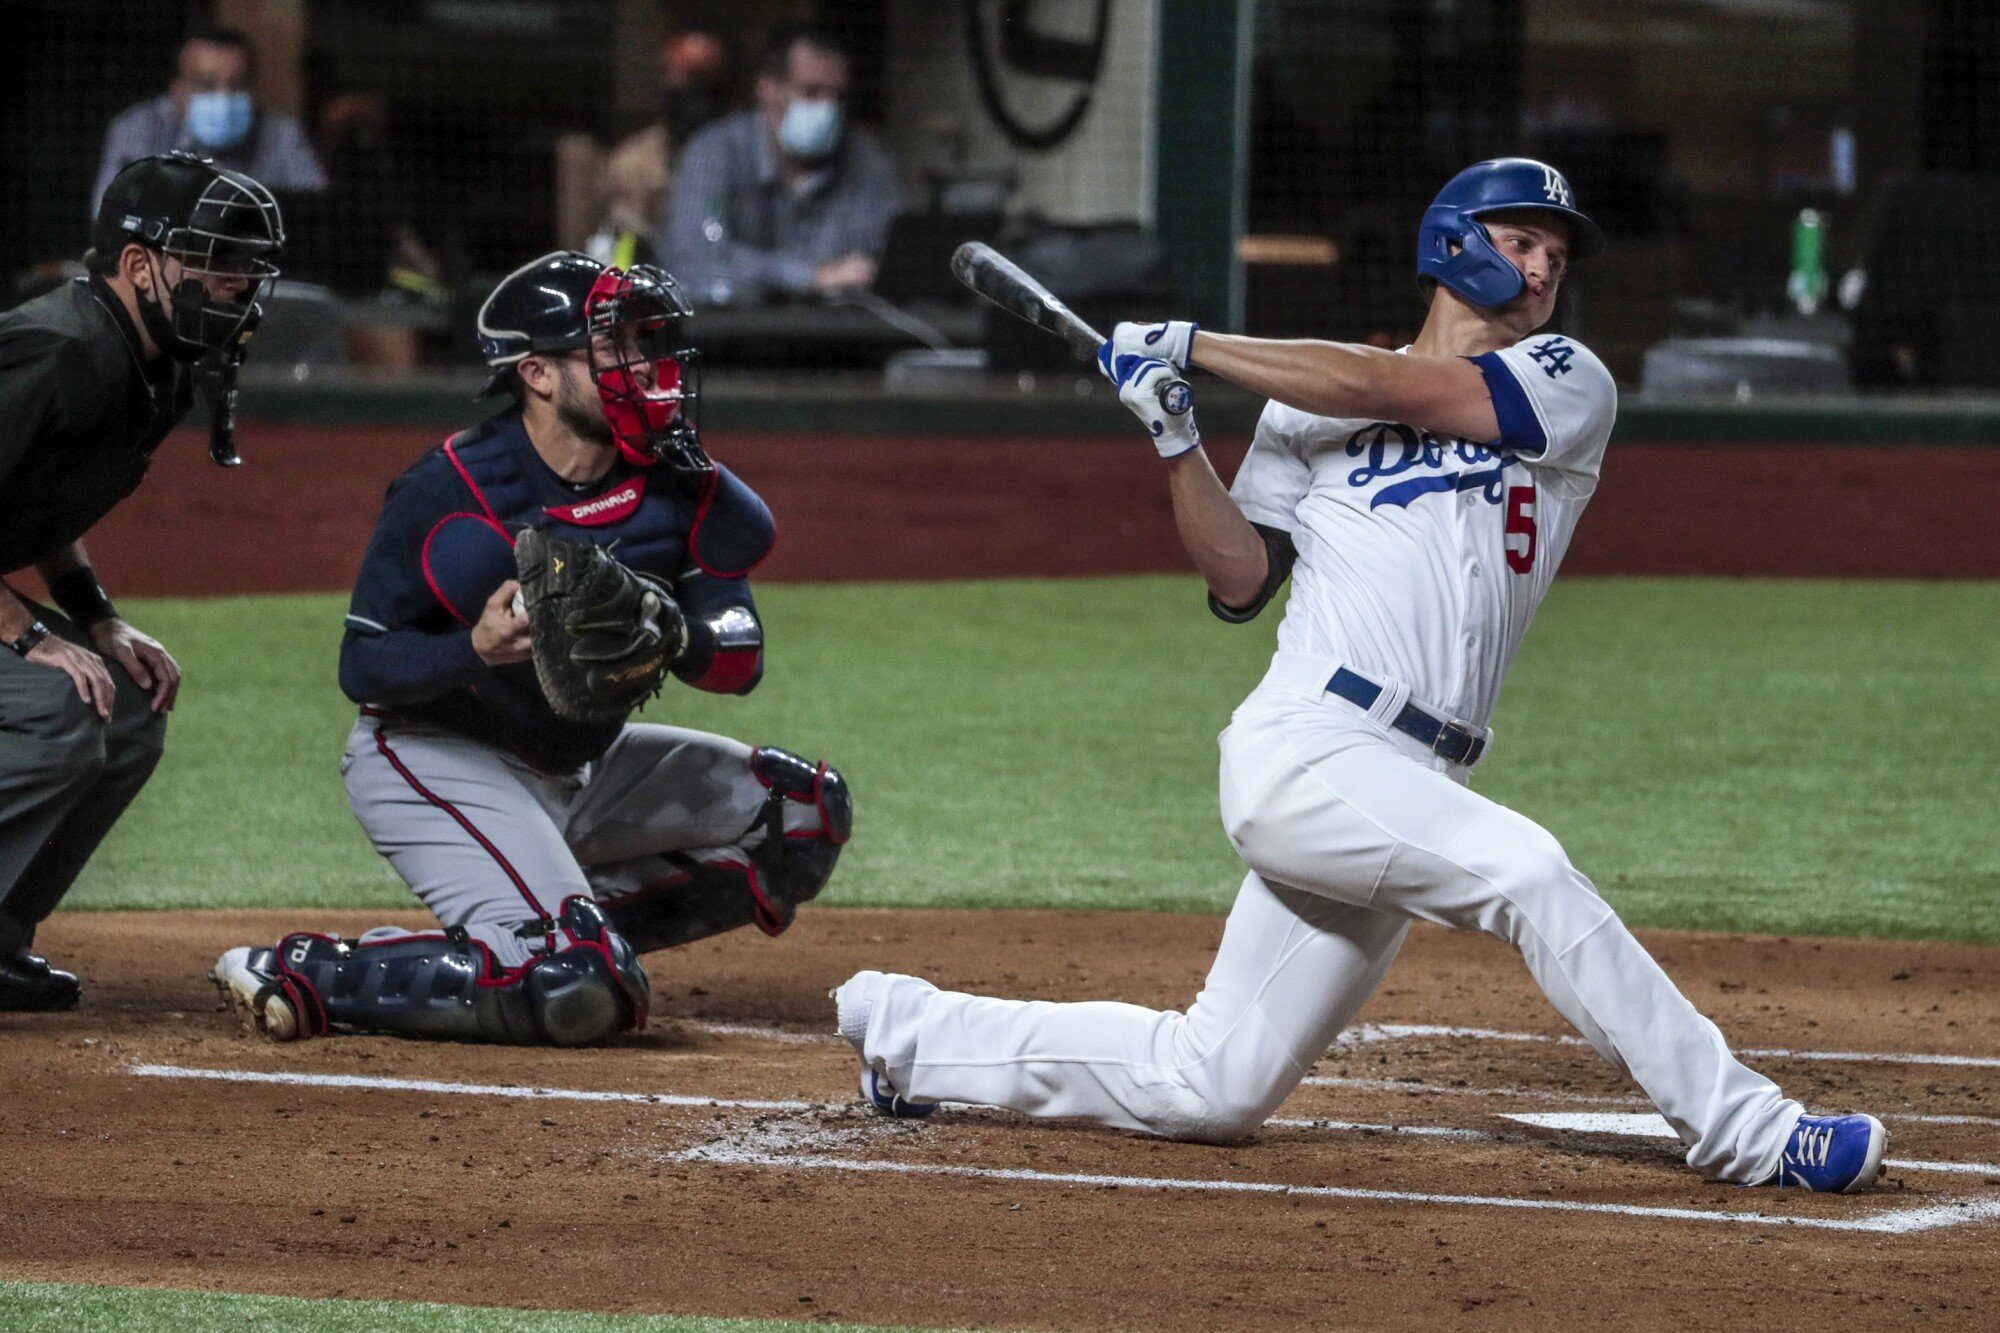 Dodgers shortstop Corey Seager swings at a pitch during Game 1 of the NLCS against the Atlanta Braves on Monday.